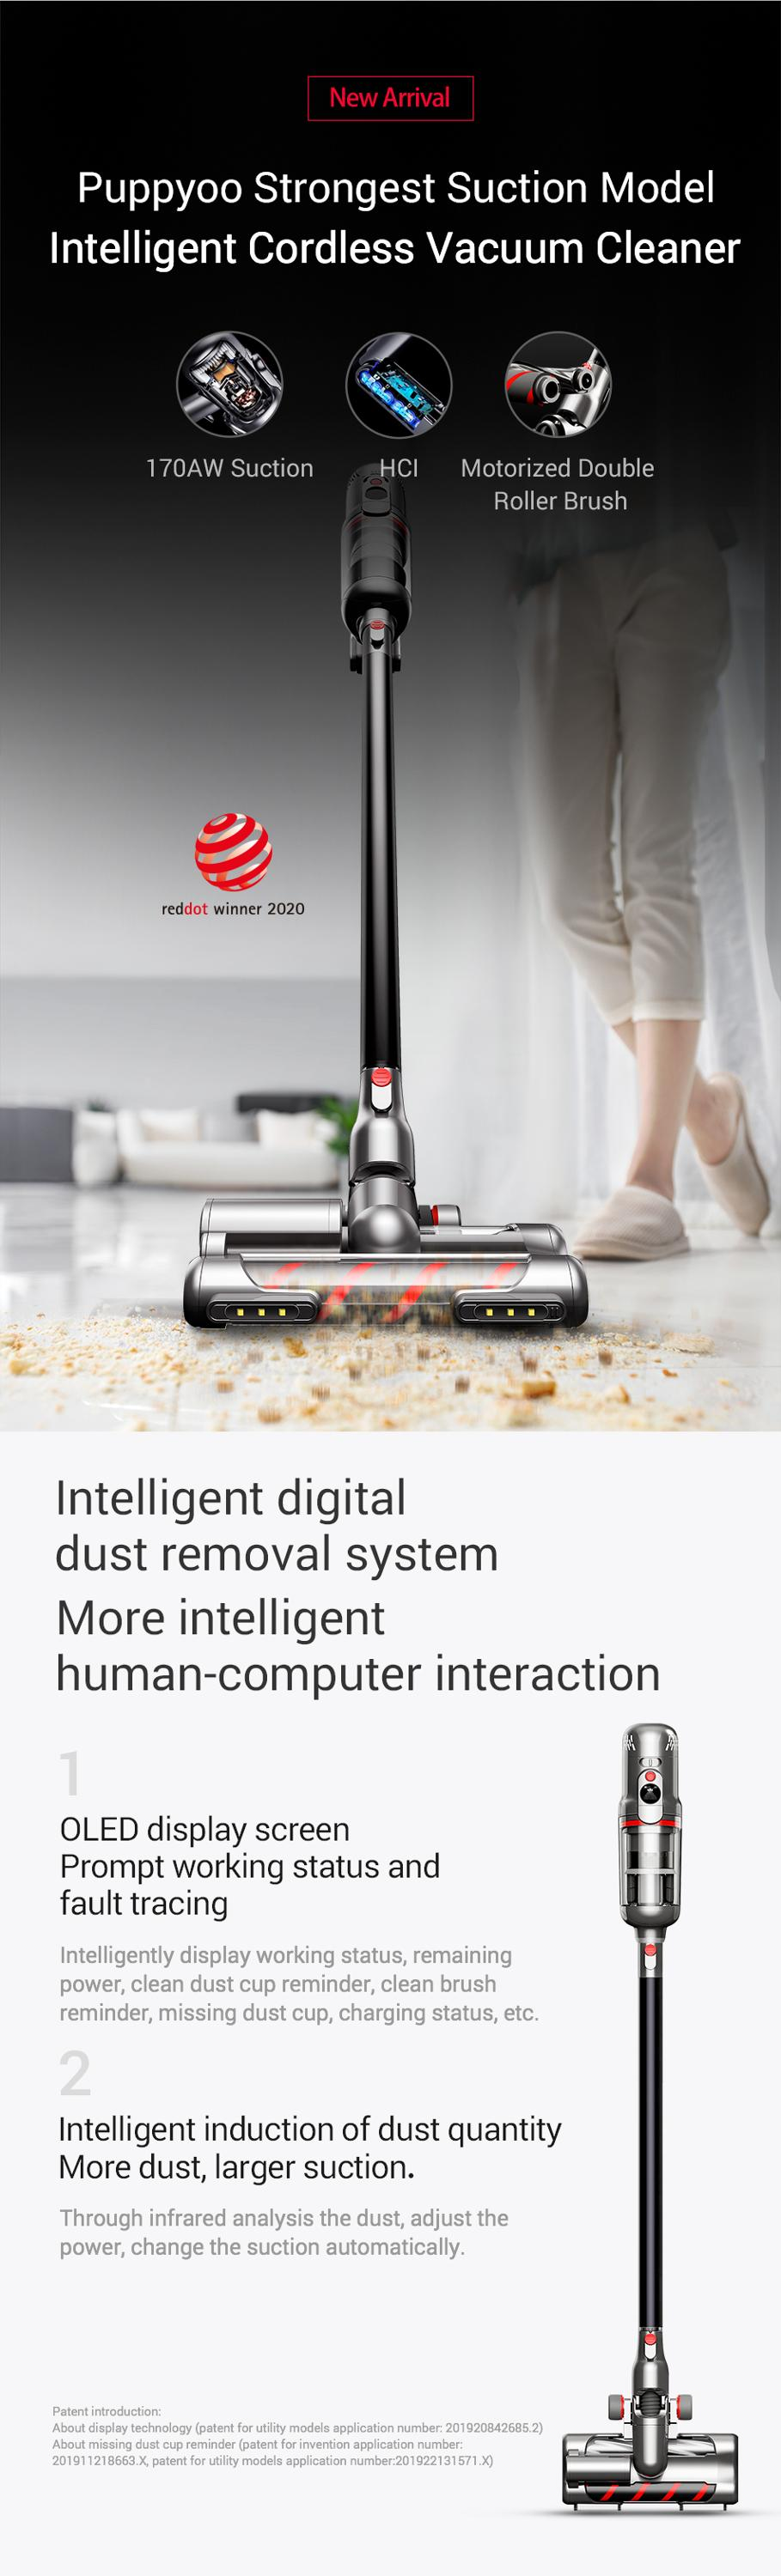 Puppyoo T12 Mate  strong Suction  Cordless Vacuum Cleaner